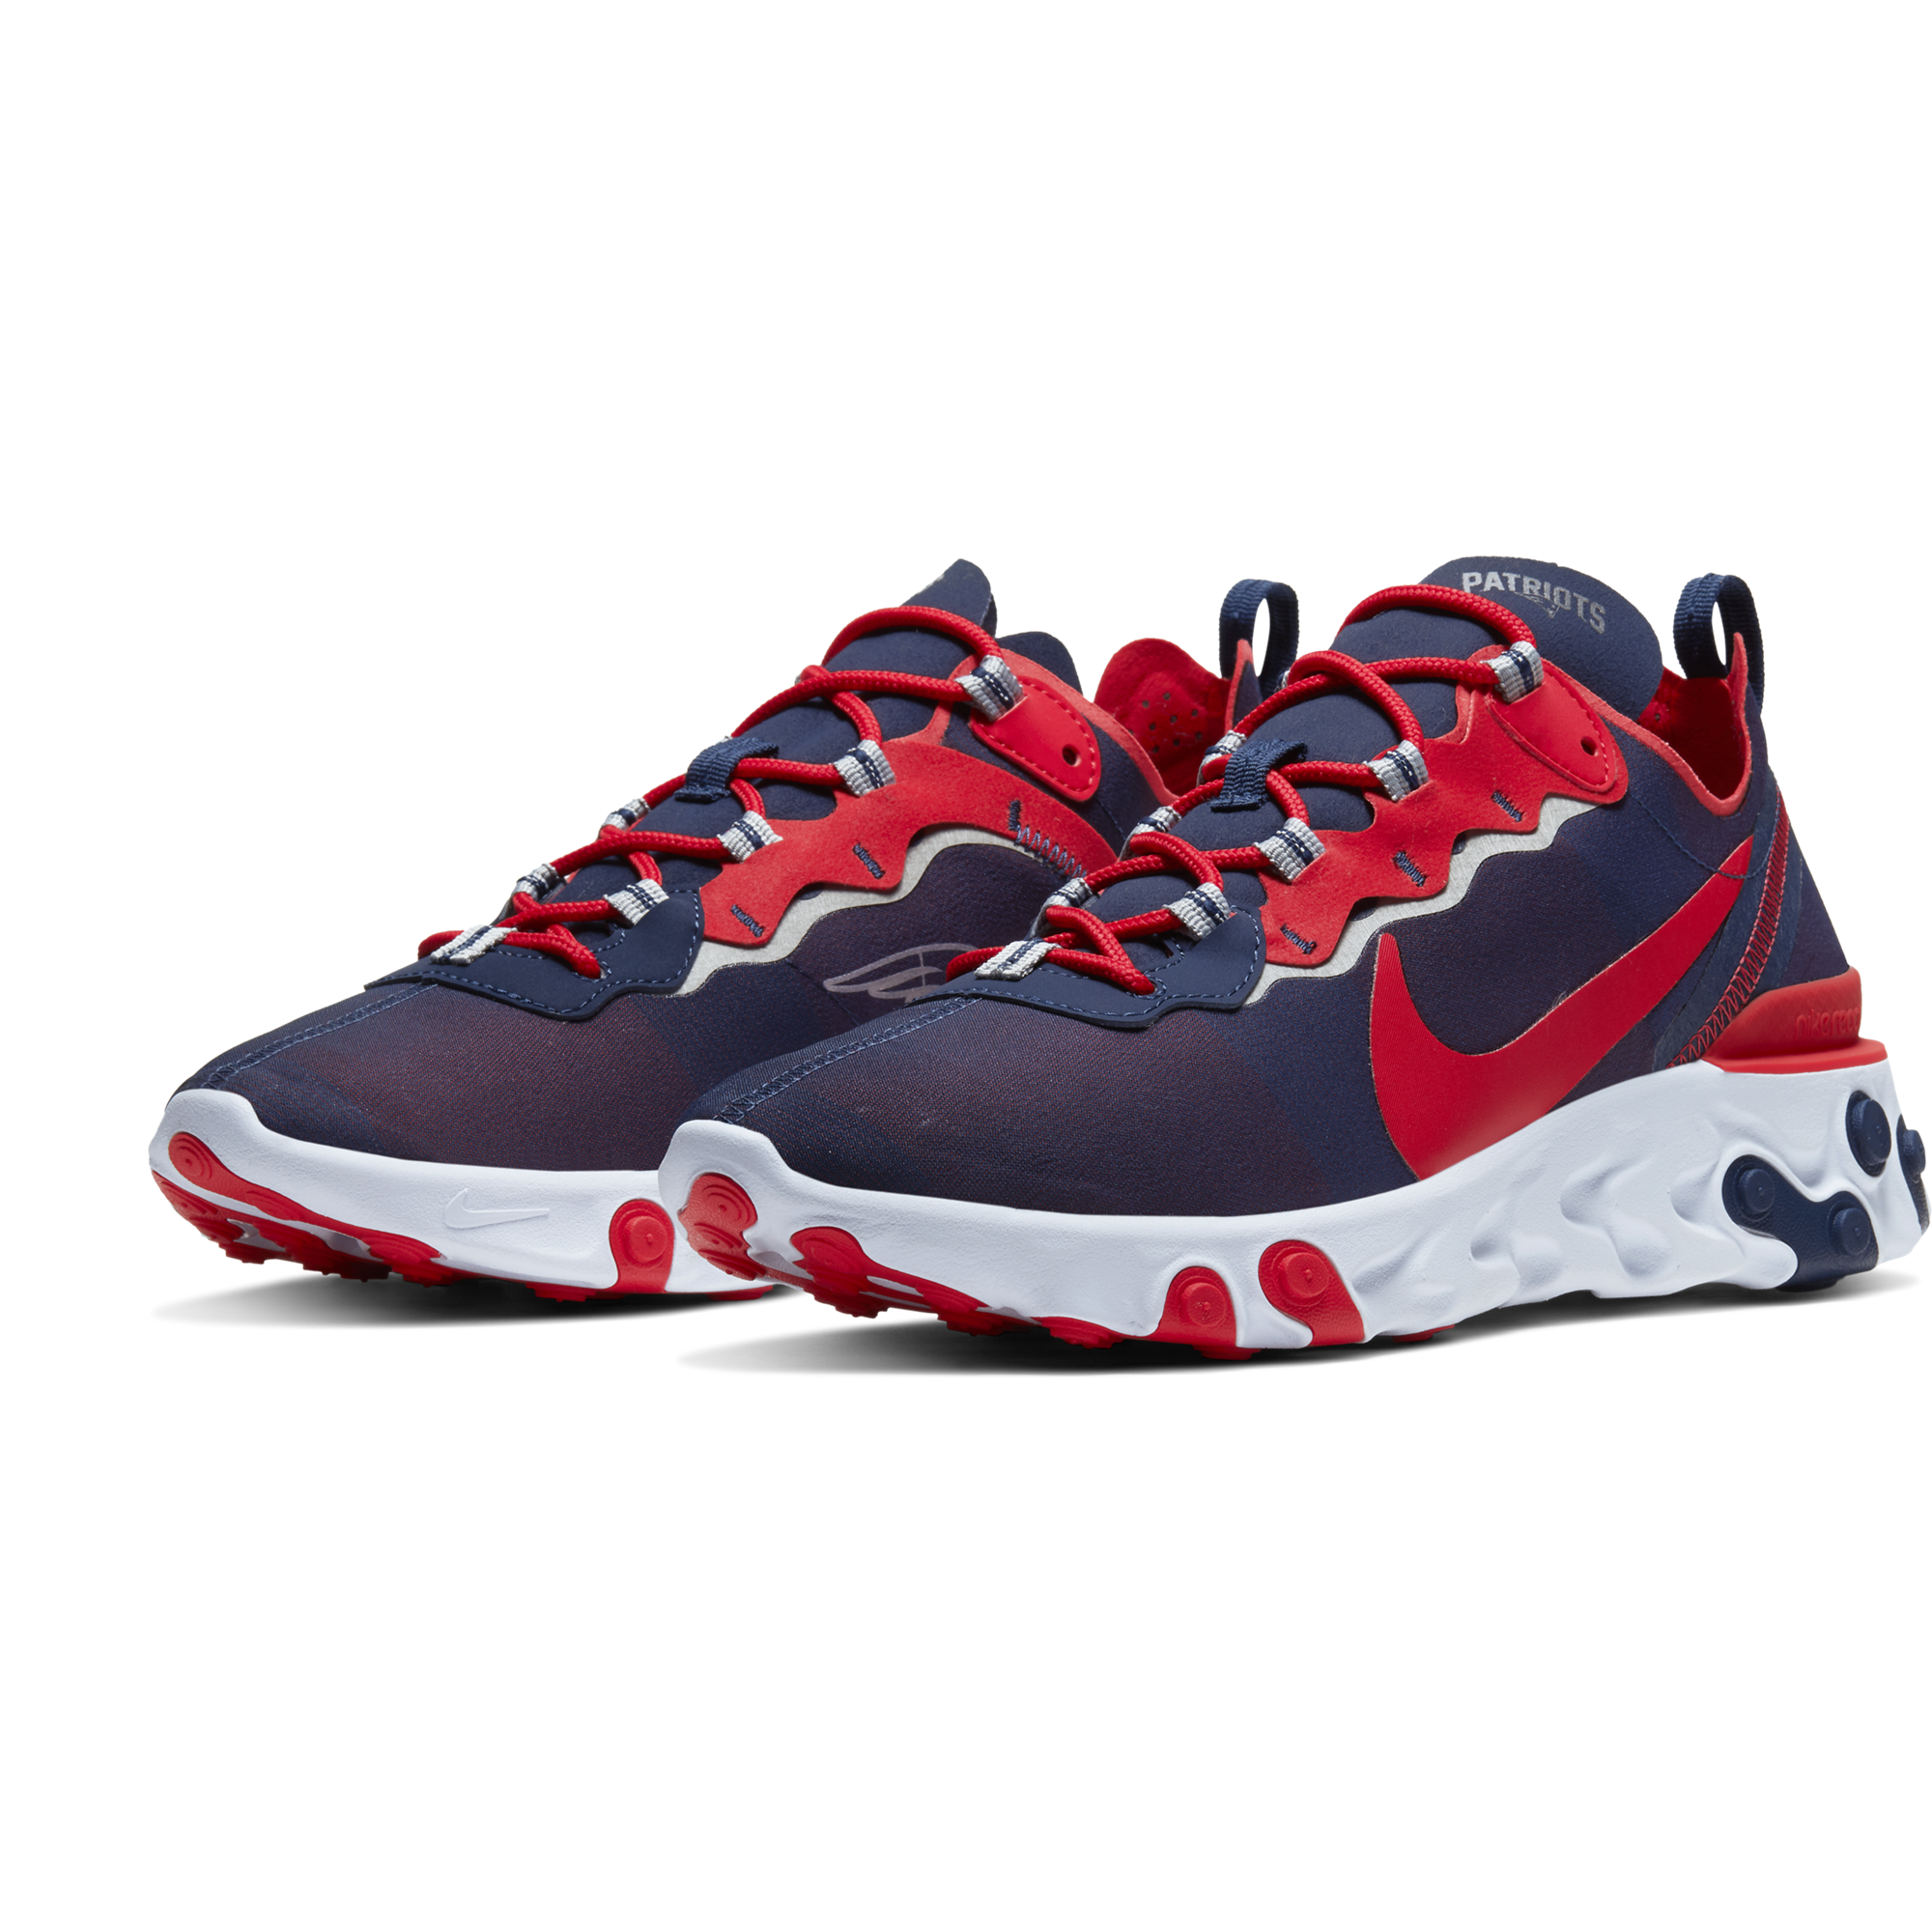 Nike releases another new Patriots shoe